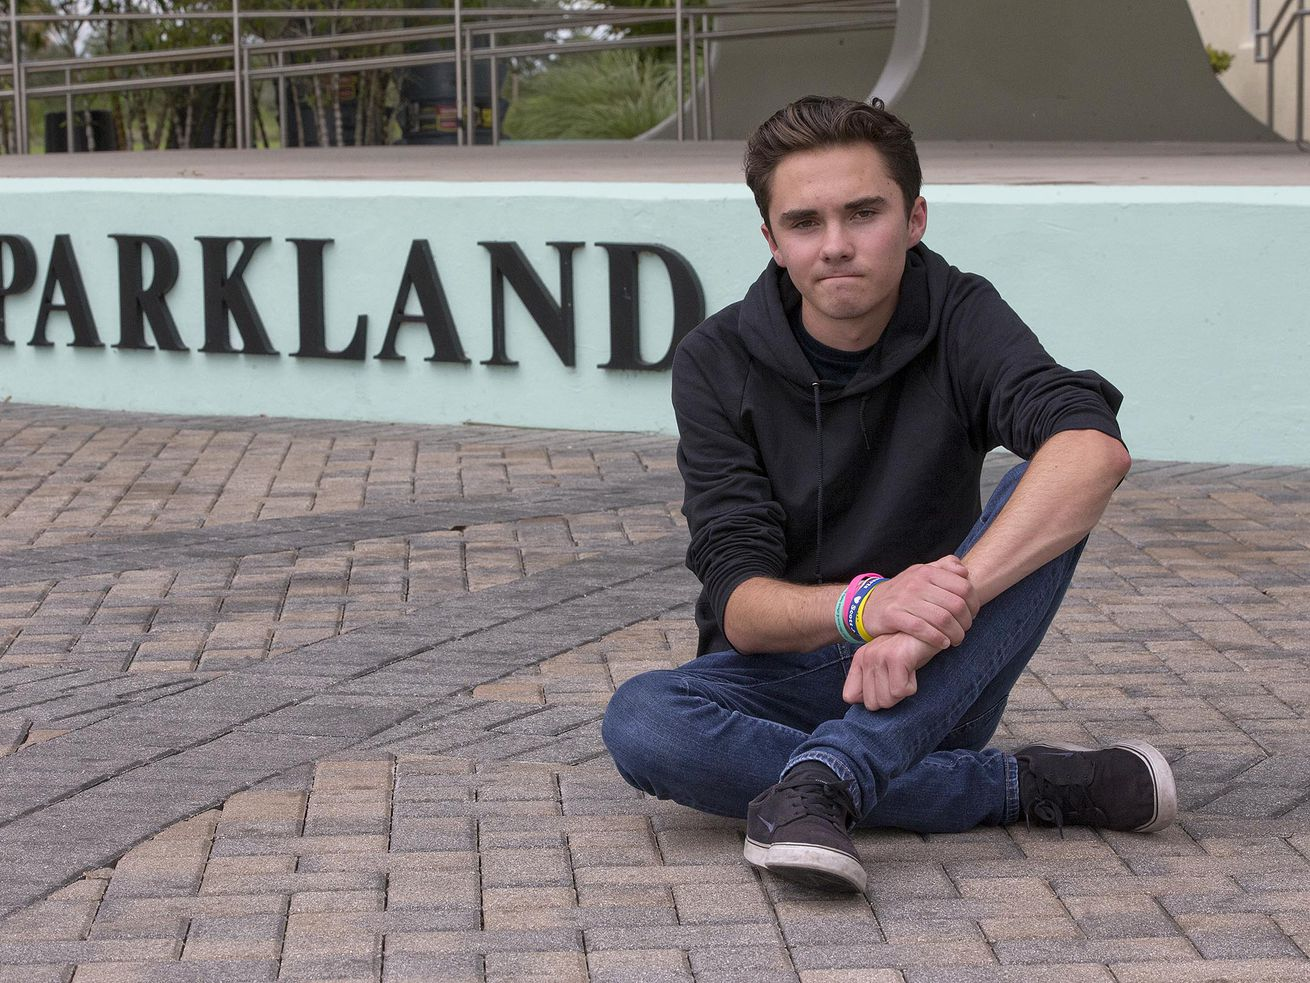 'I immediately got political': 2 Parkland survivors share their stories during Park City Q&A